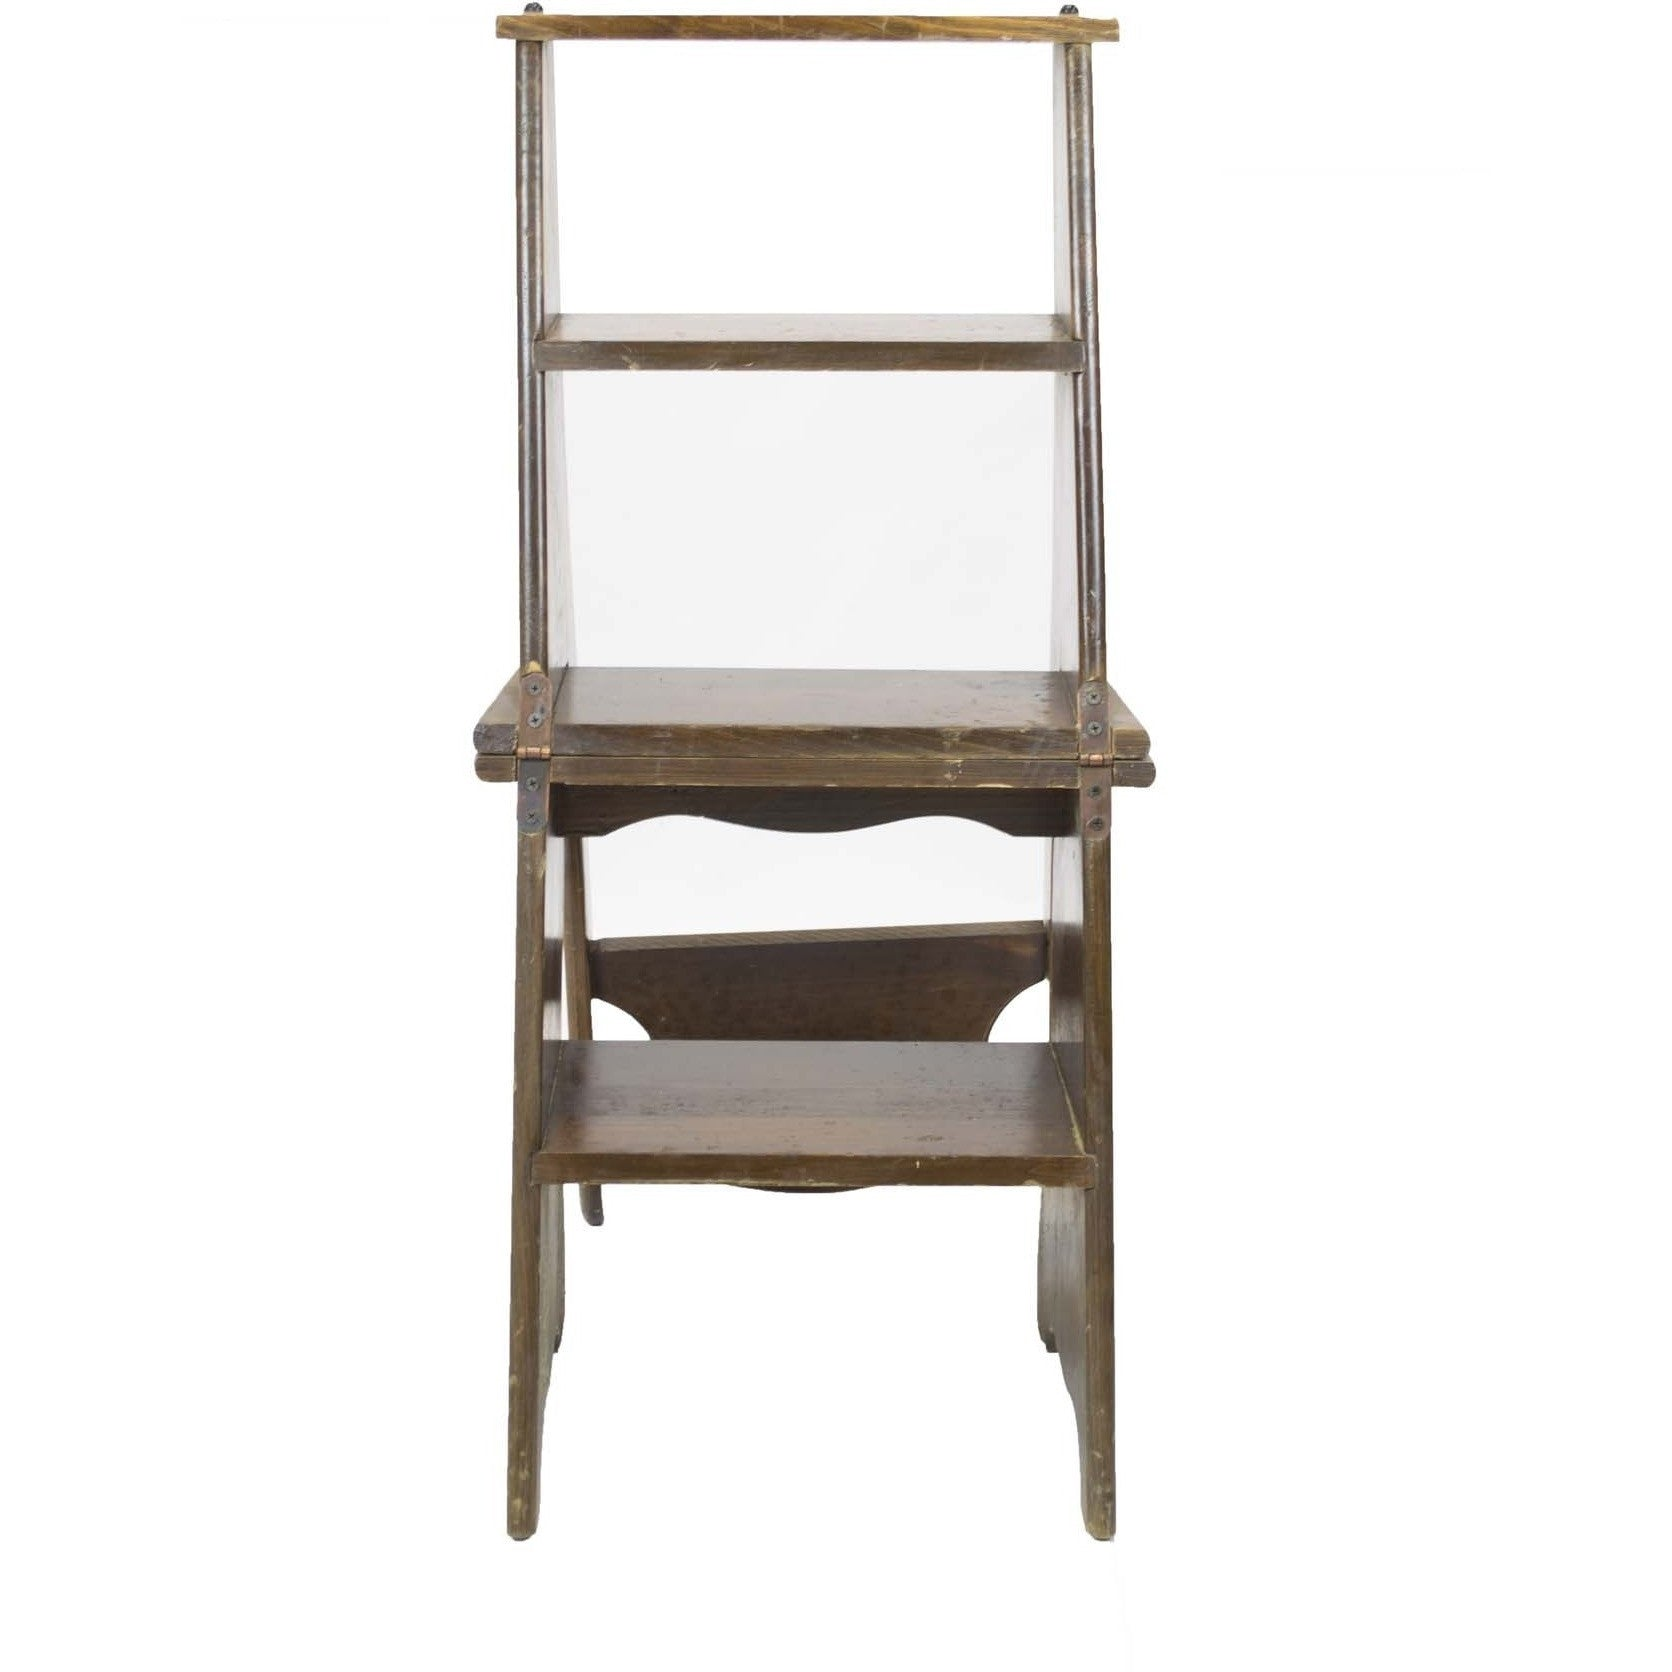 Convertible Ladder-Chair Library Step Stool